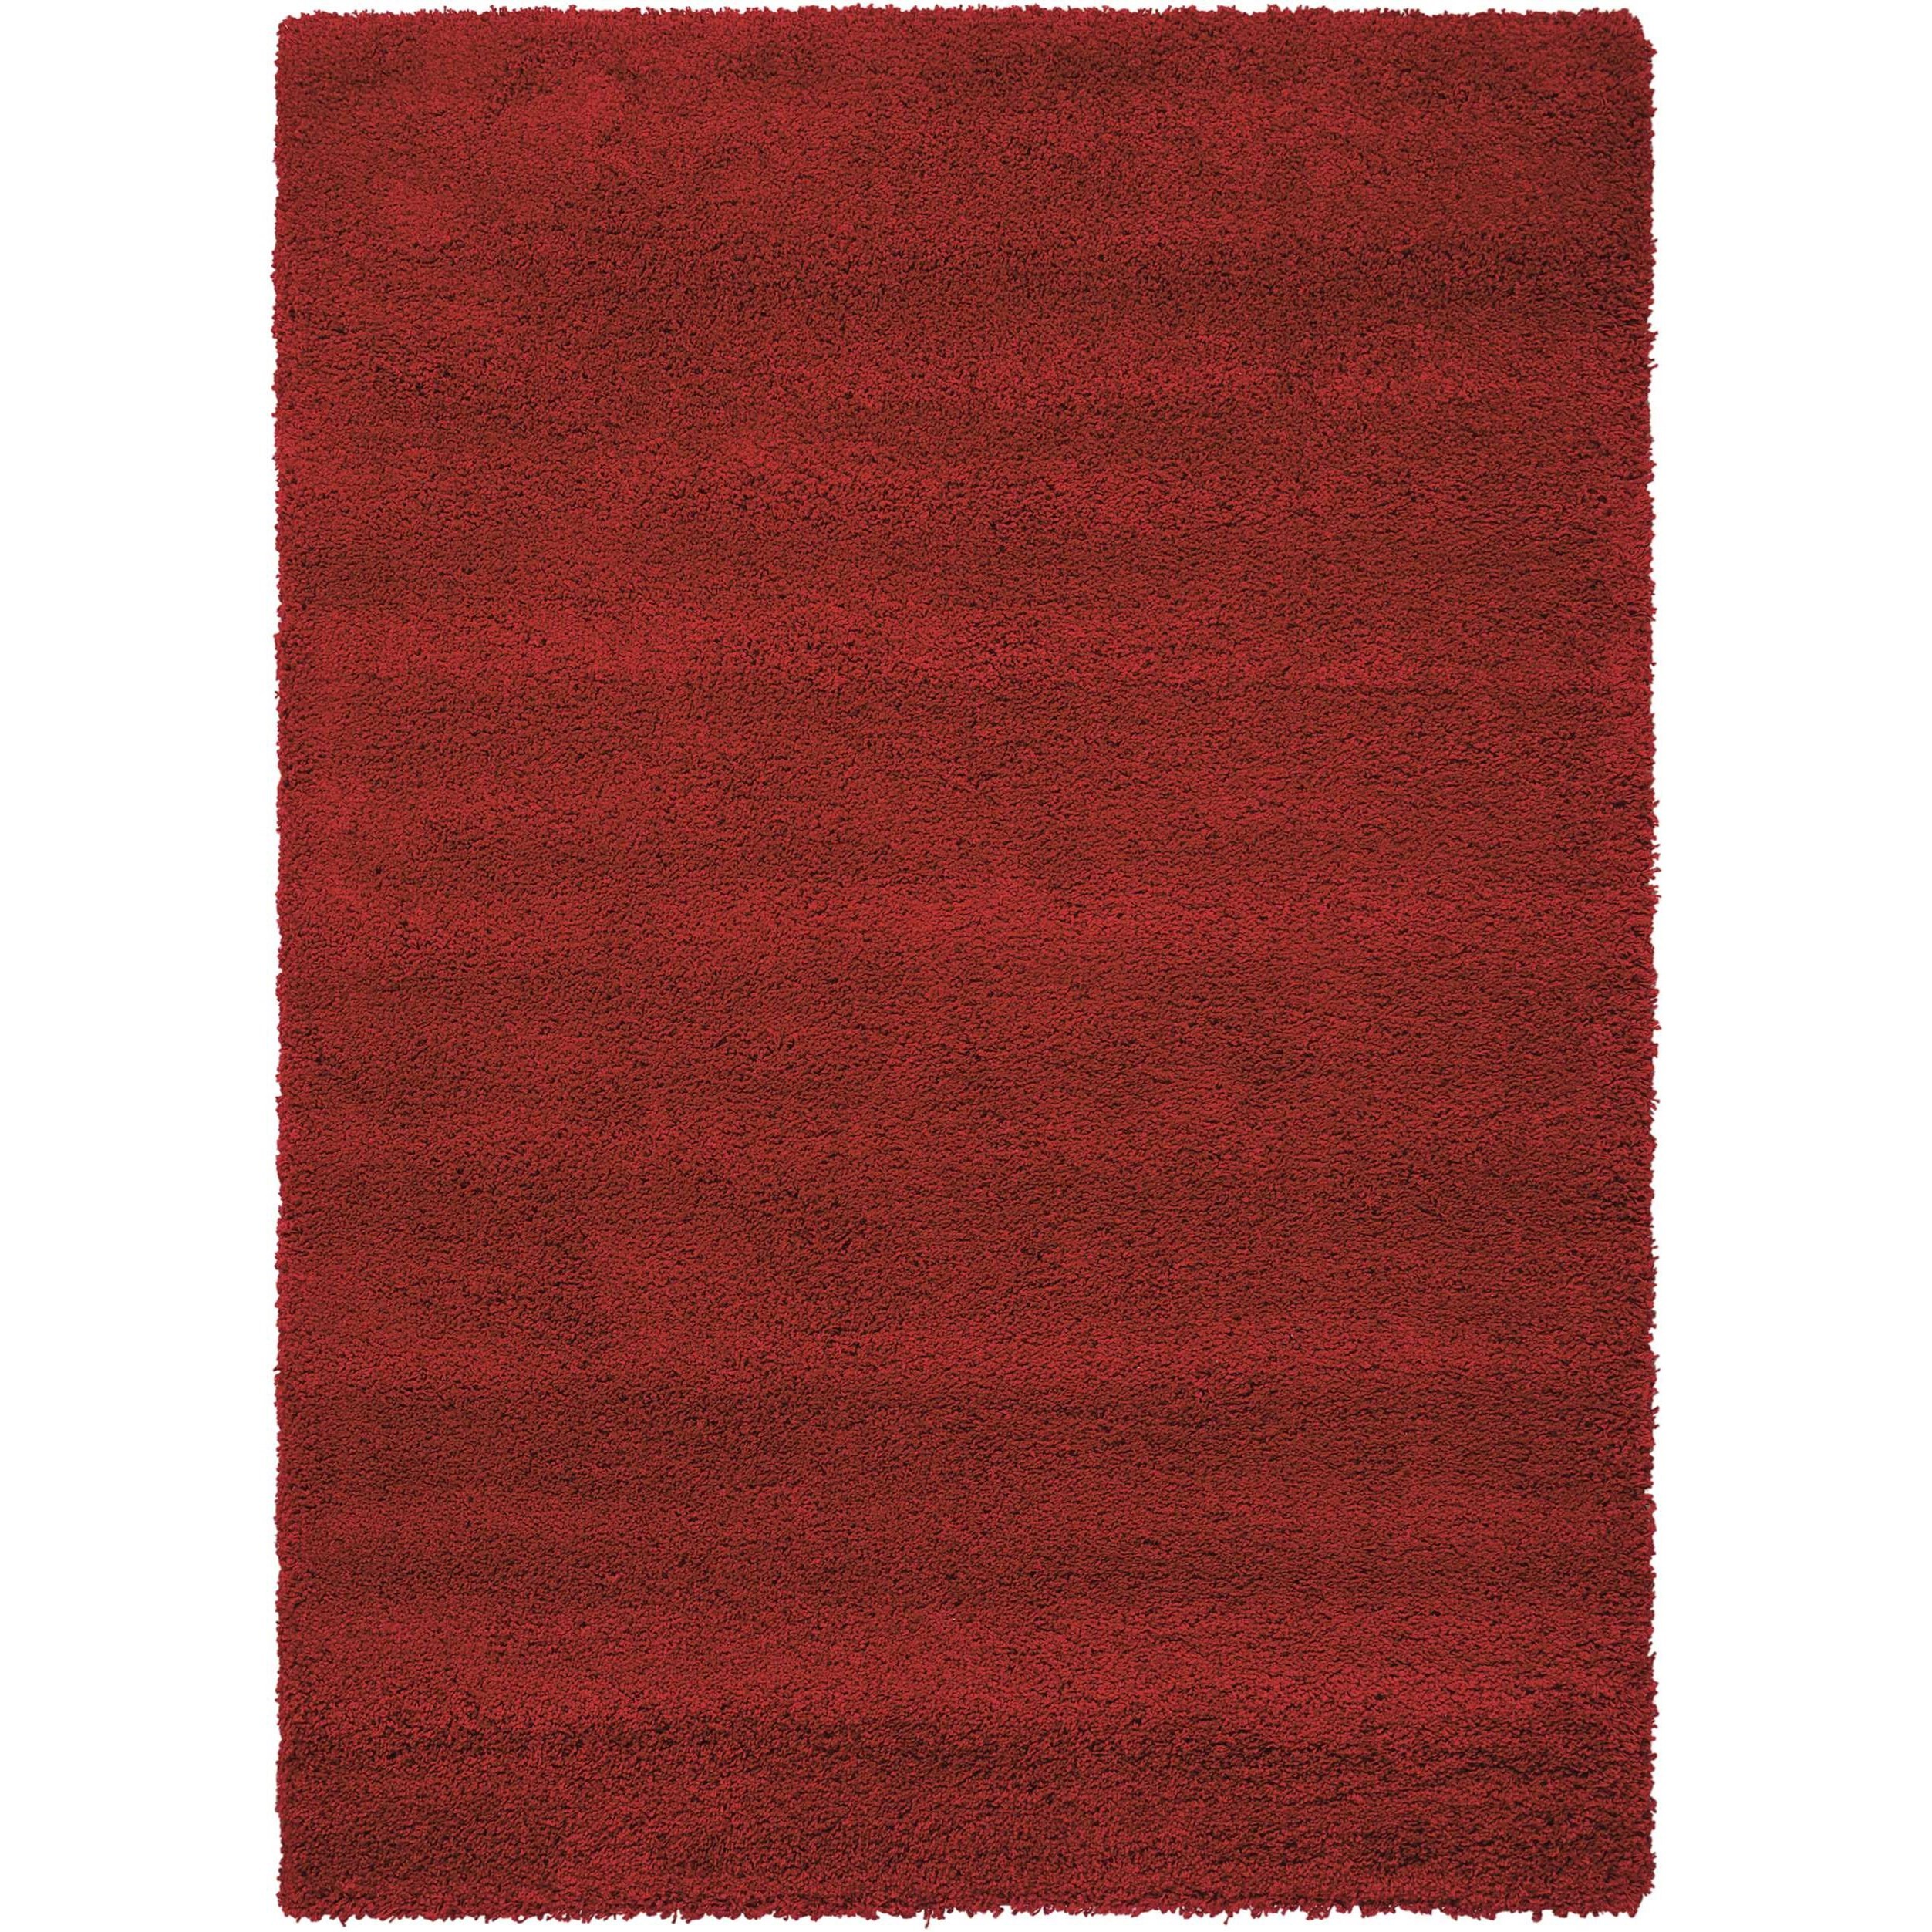 """Amore 3'11"""" x 5'11"""" Red Rectangle Rug by Nourison at Sprintz Furniture"""